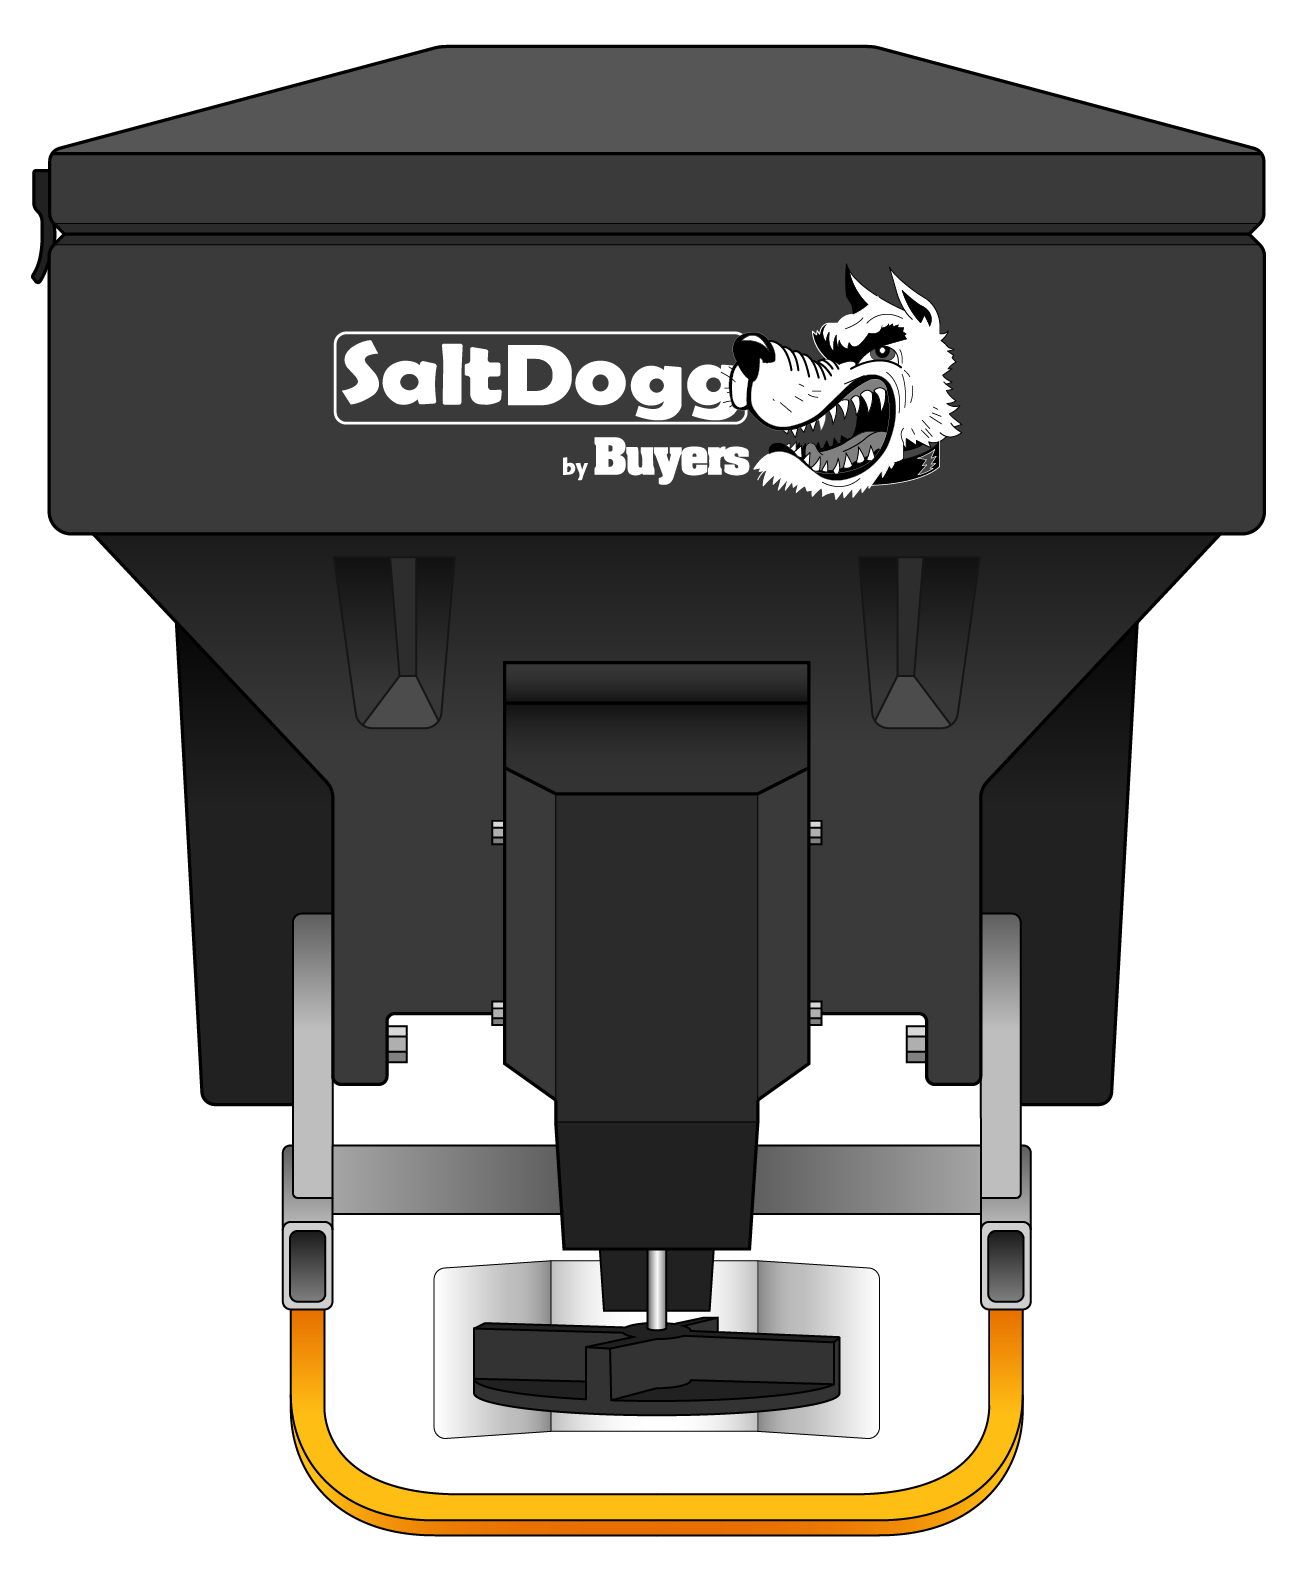 TGS03-S.A.M. SaltDogg TGS03 8.0 Cubic Foot Black Polymer Electric Tailgate Spreader